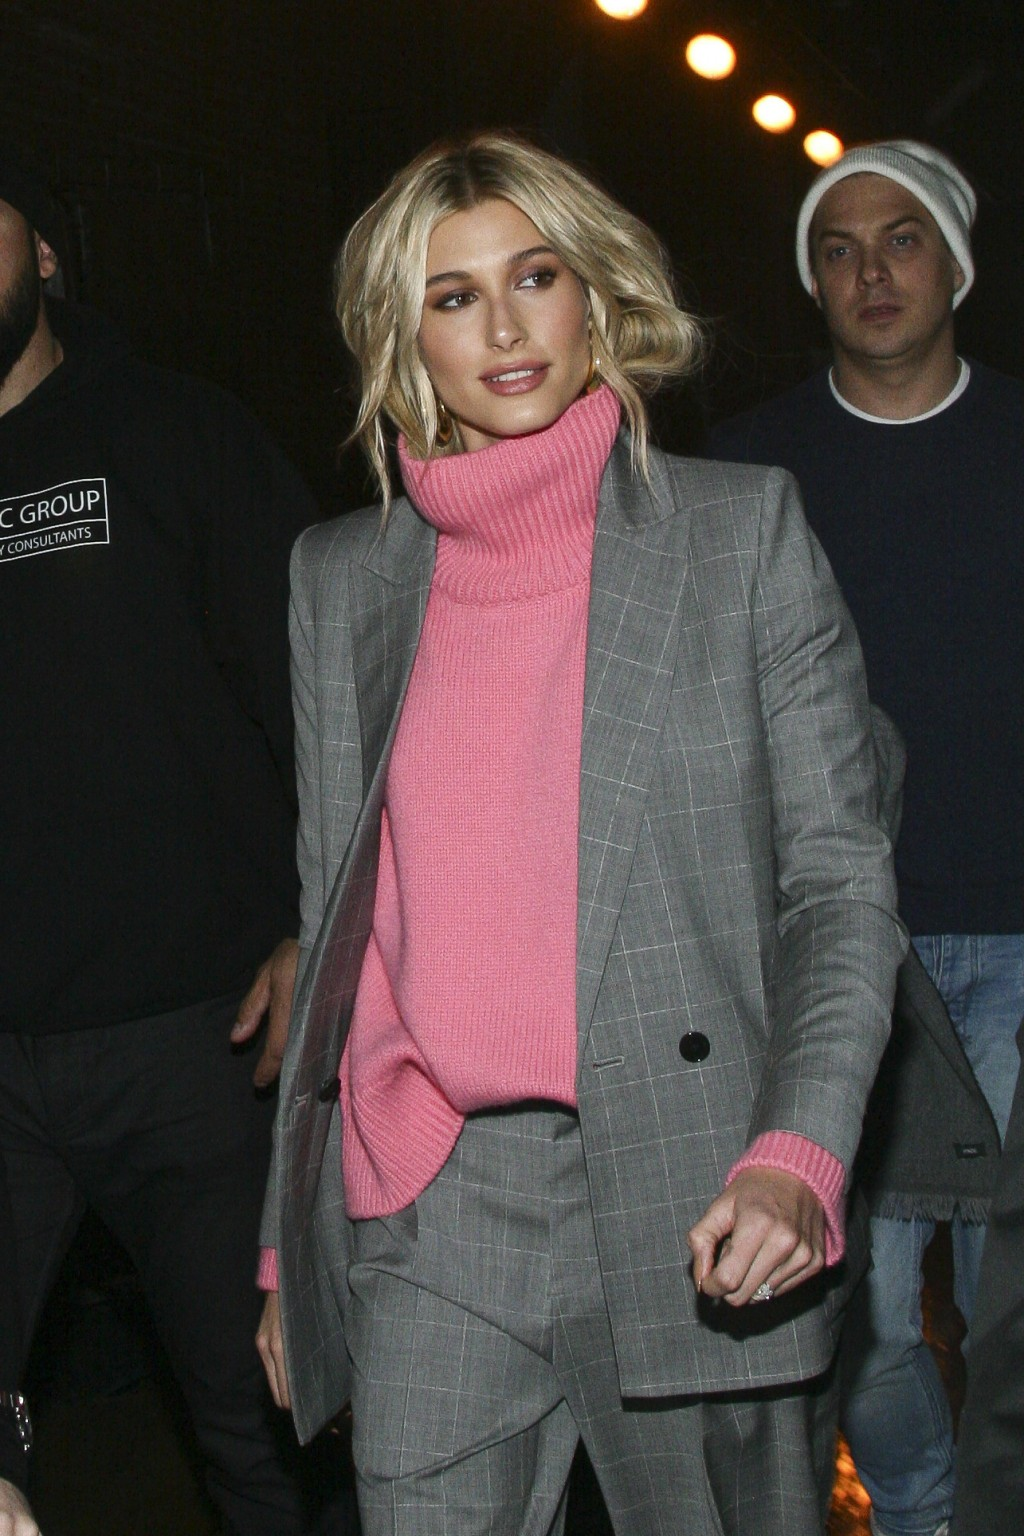 Hailey Baldwin attends the NYFW Fall/Winter 2019 Zadig & Voltaire fashion show at The Tunnel on Monday, Feb. 11, 2019, in New York. (Photo by Andy Kro